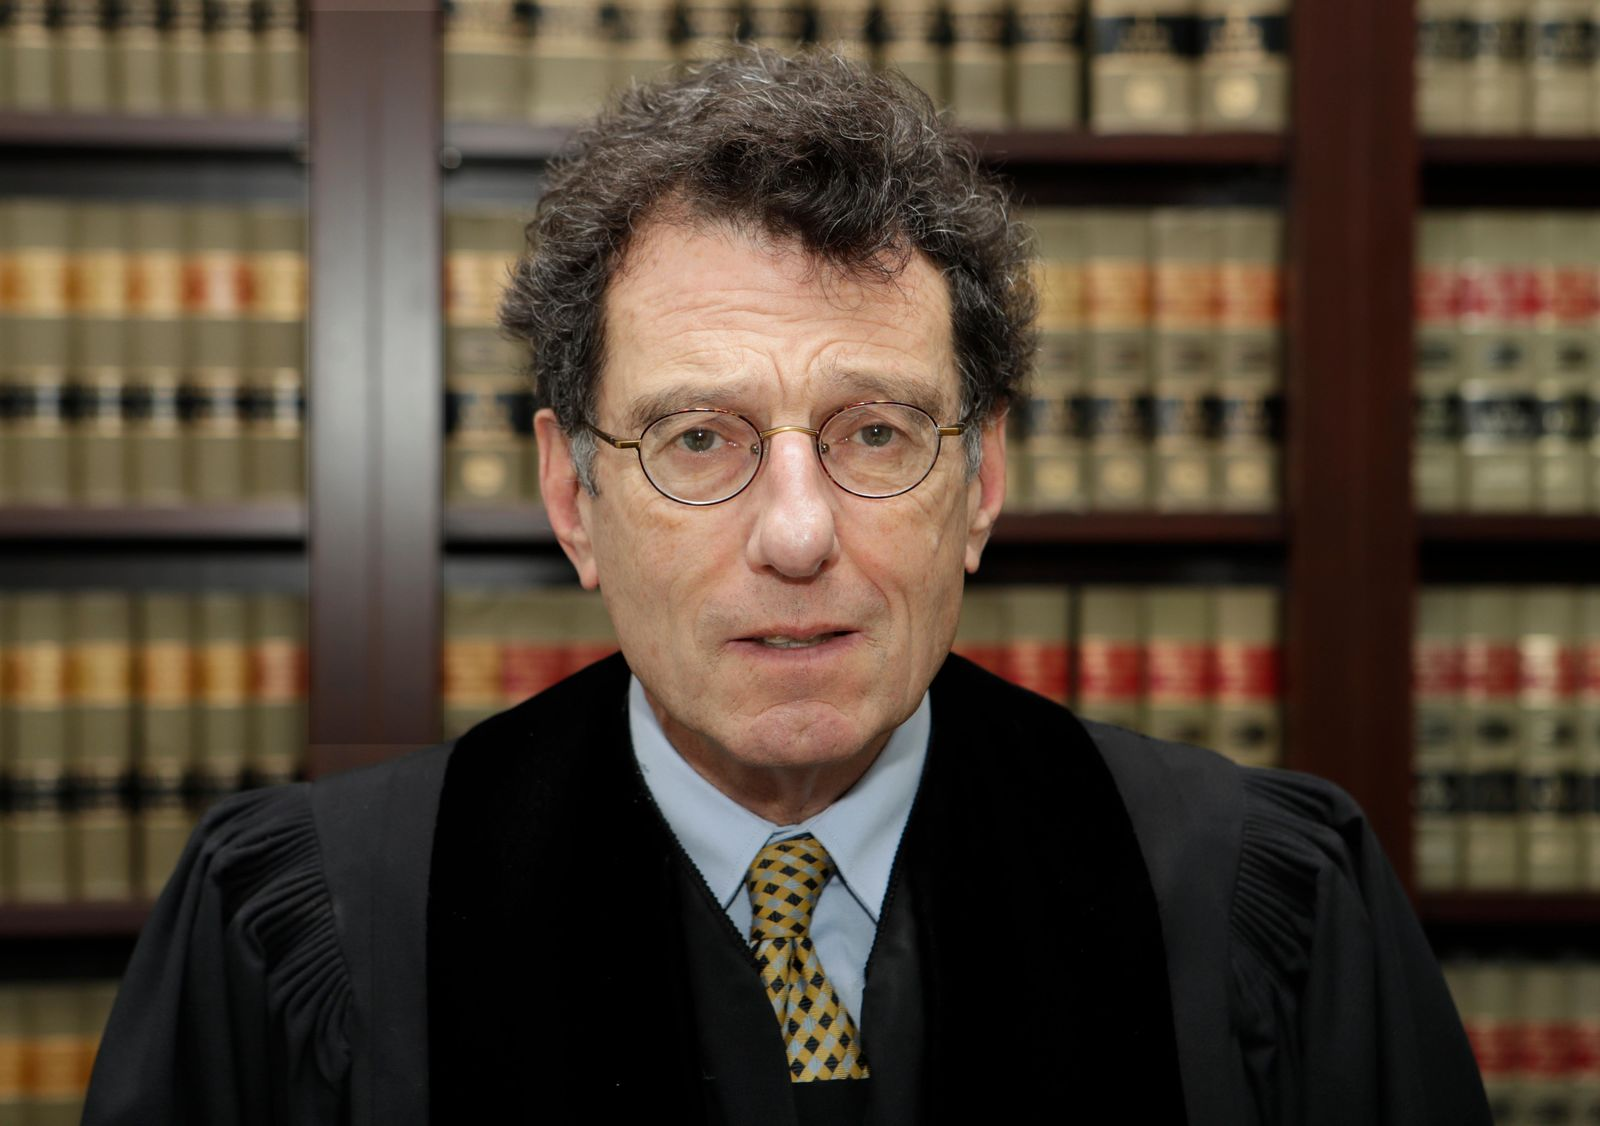 FILE - This Jan. 11, 2018 file photo shows Judge Dan Polster in his office, in Cleveland.  Attorneys representing eight drug distributors, pharmacies and retailers facing trial for their roles in the national opioid crisis are seeking to disqualify the federal judge overseeing their cases saying he's shown clear bias in his efforts to obtain a multi-billion dollar global settlement. The motion was filed late Friday, Sept. 13, 2019,  in U.S. District Court in Cleveland, where Judge Dan Polster presides over most of the 2,000 lawsuits filed by state, local and tribal governments. Polster has not responded.  (AP Photo/Tony Dejak, File)